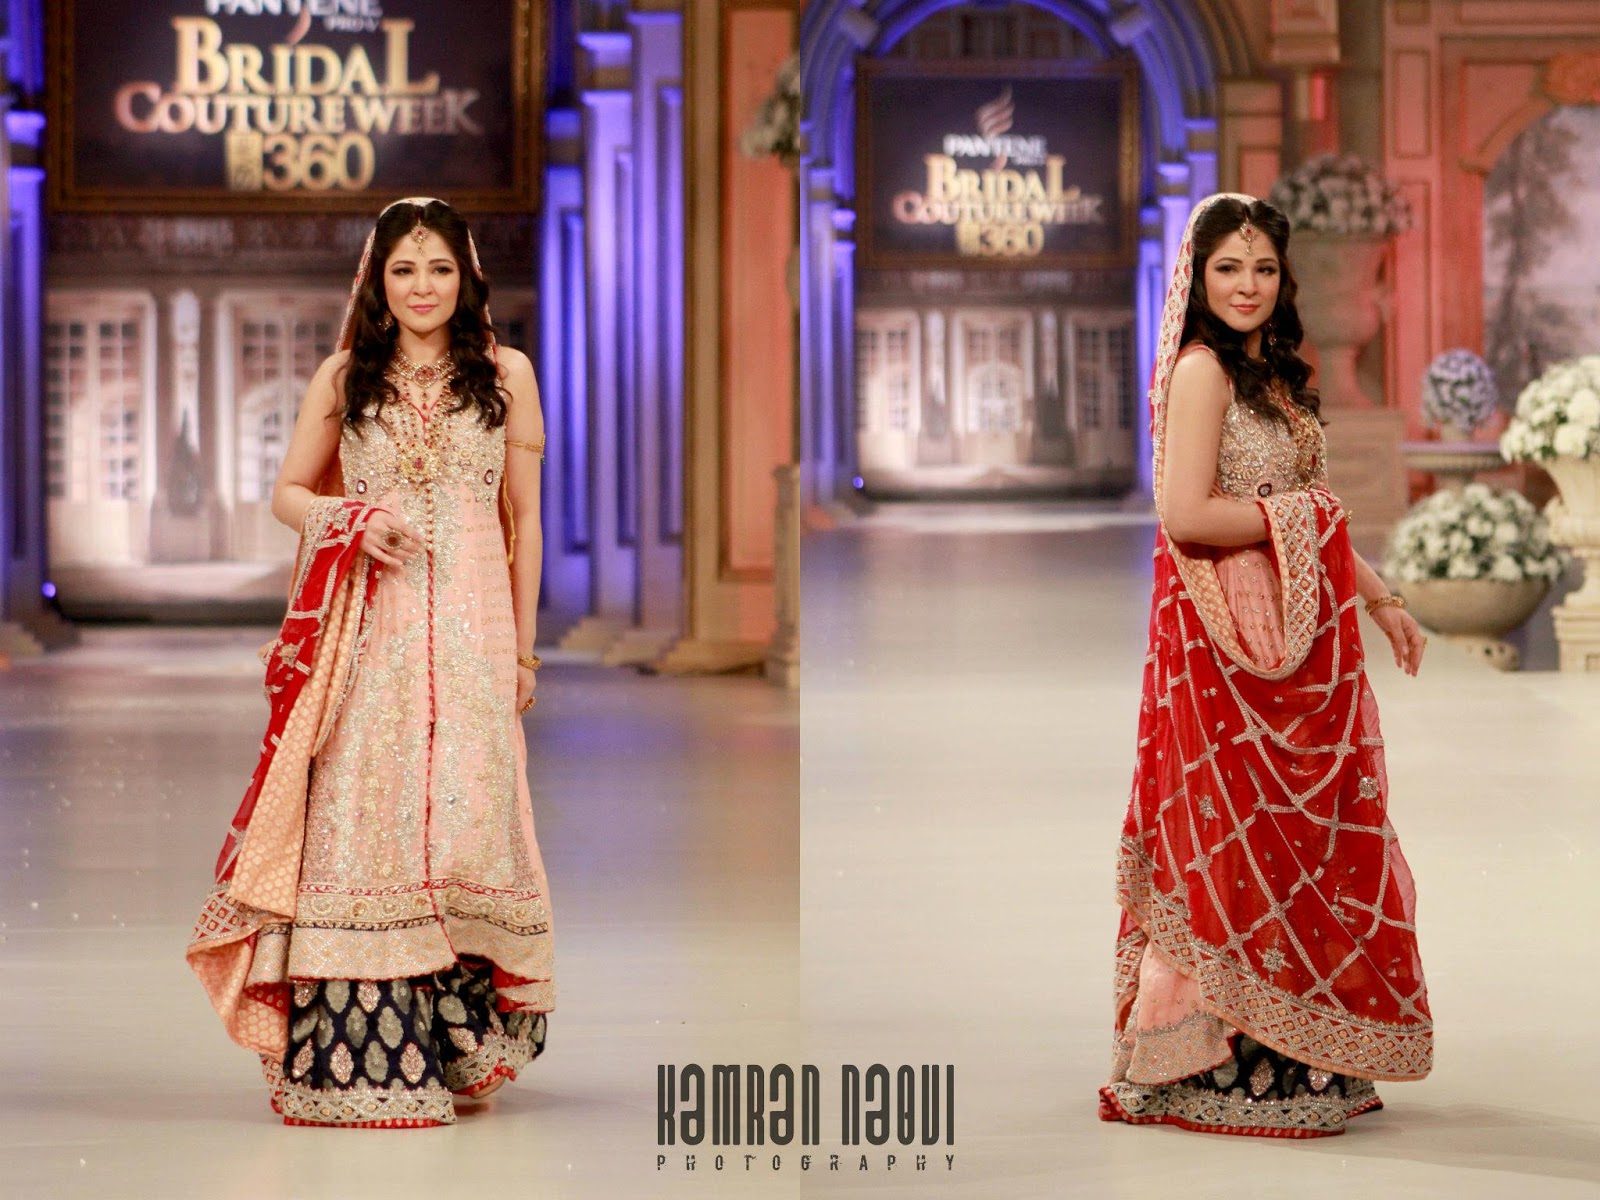 Pantene Bridal Couture Week 18th March 2013 By Style 360 - Fashion Photos